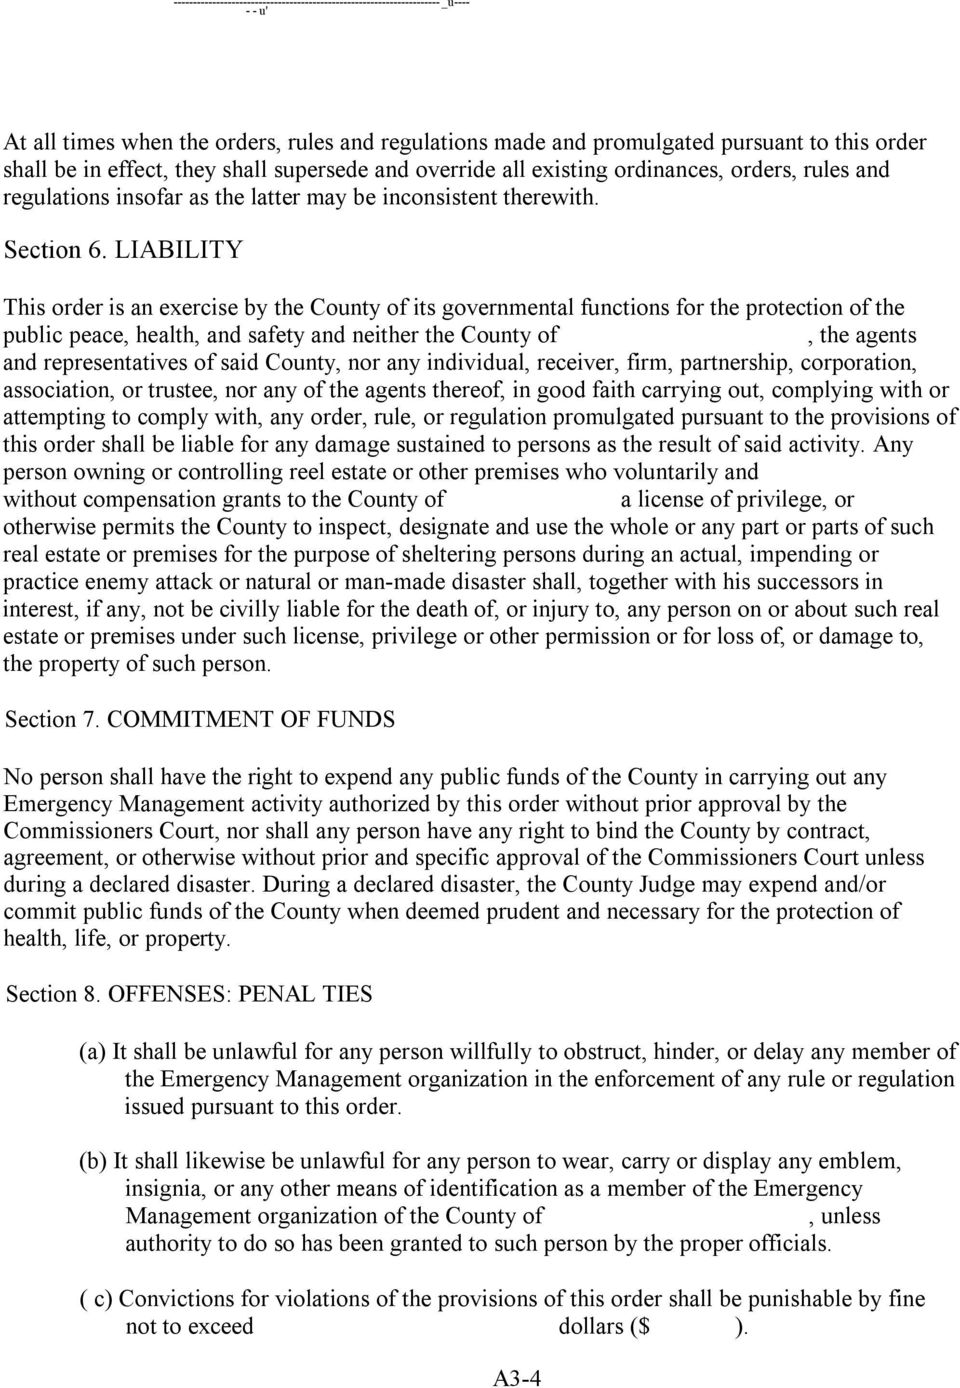 LIABILITY This order is an exercise by the County of its governmental functions for the protection of the public peace, health, and safety and neither the County of, the agents and representatives of